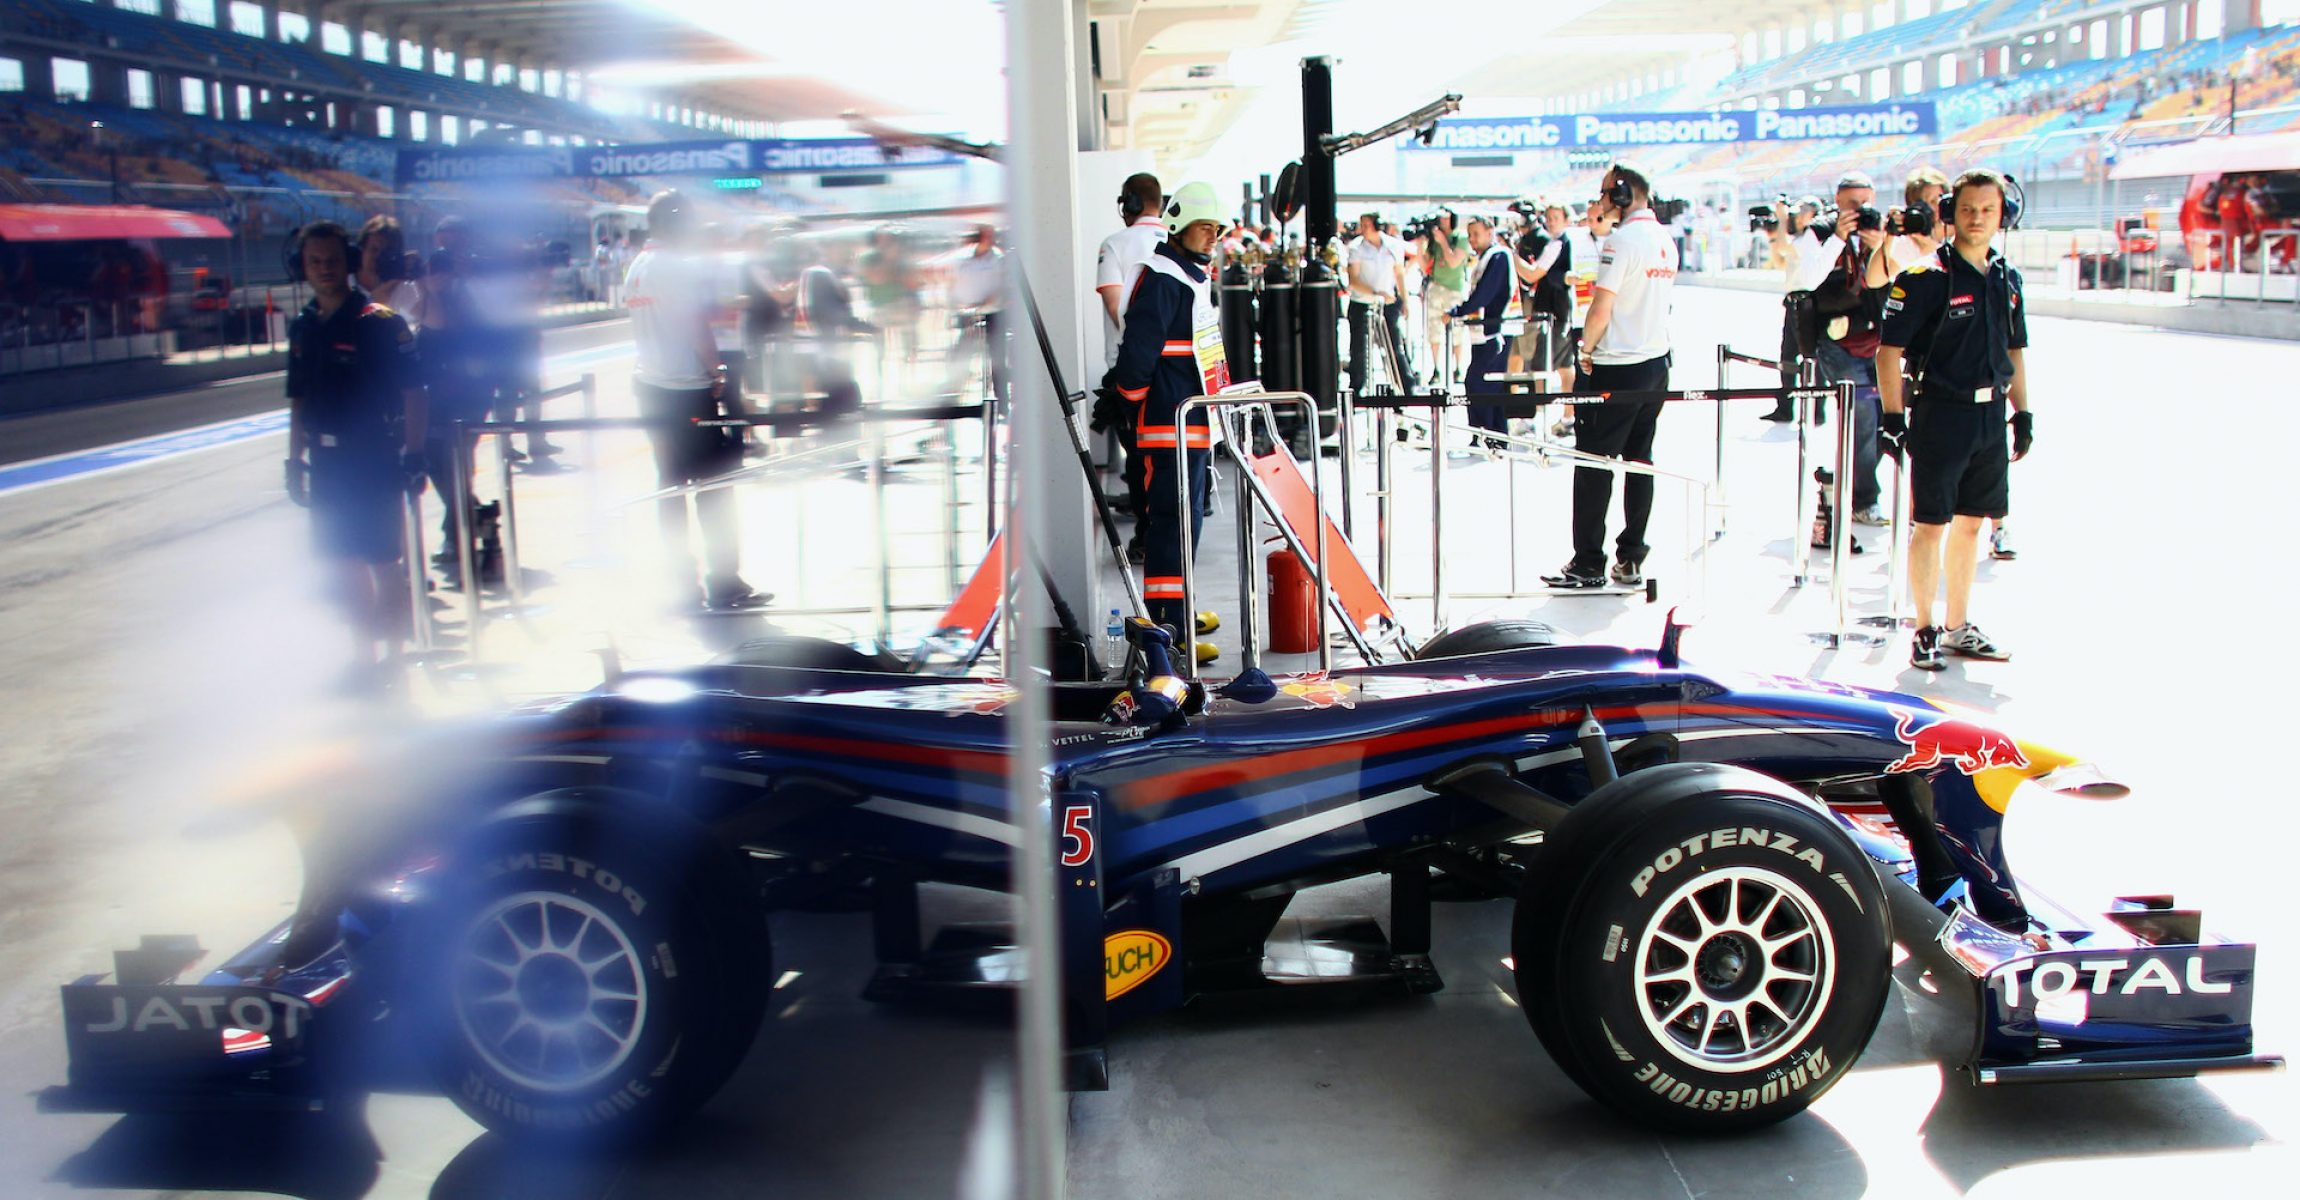 Red Bull, Bridgestone during practice for the Turkish Formula One Grand Prix at Istanbul Park on May 28, 2010, in Istanbul, Turkey.